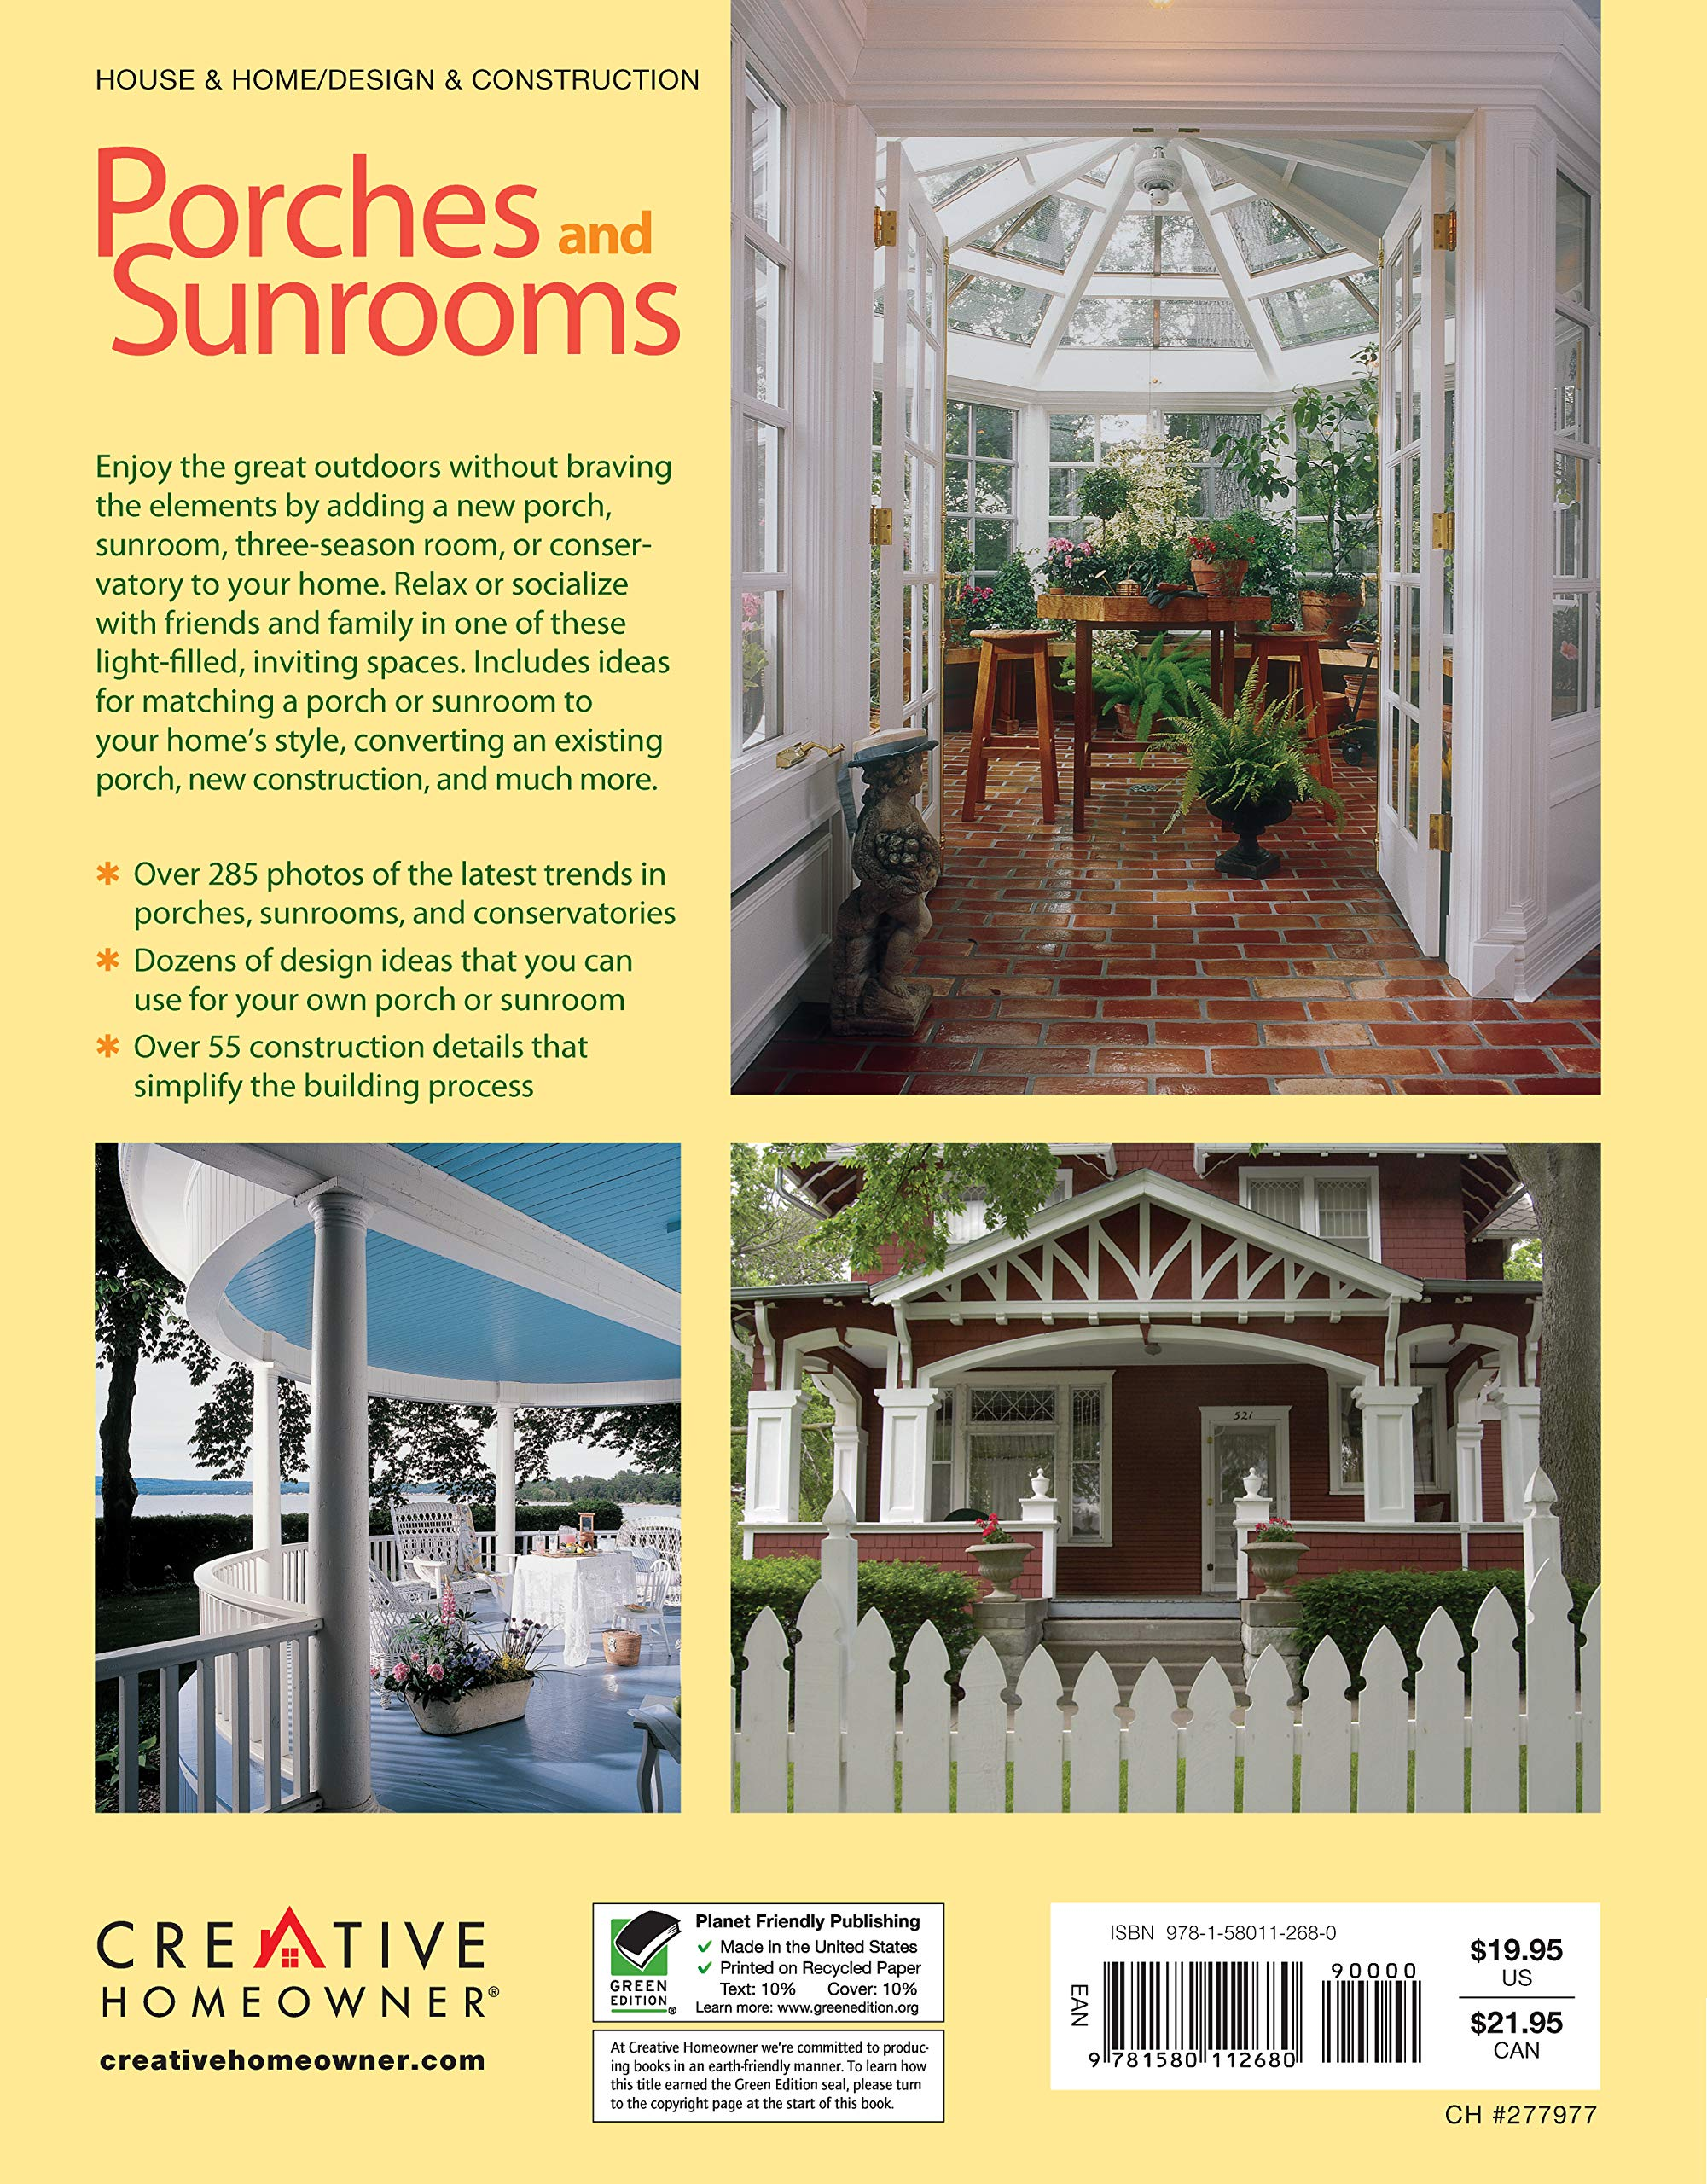 Porches And Sunrooms Planning And Remodeling Ideas Creative Homeowner Home Improvement German Roger Home Improvement Porches 9781580112680 Amazon Com Books